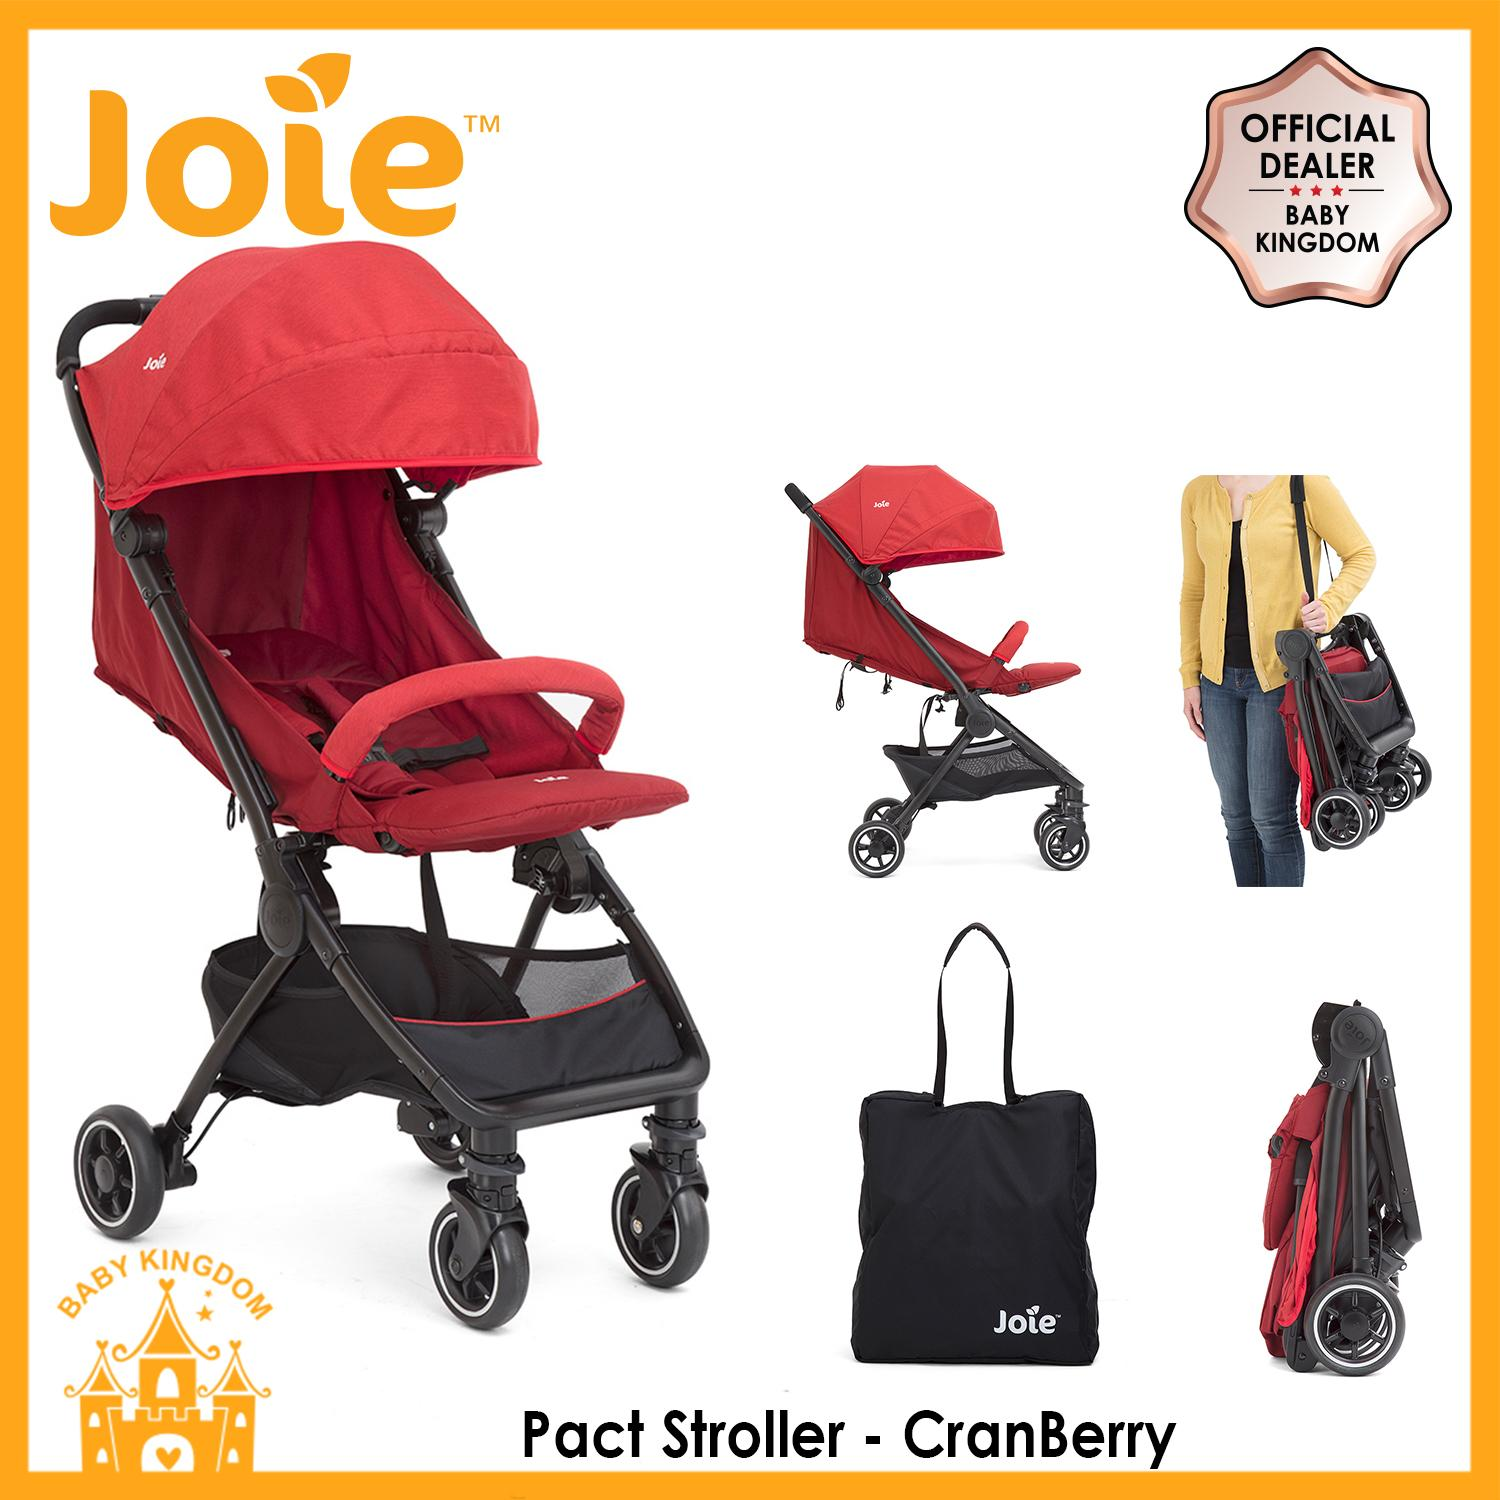 Joie-Pact-cranberry.jpg